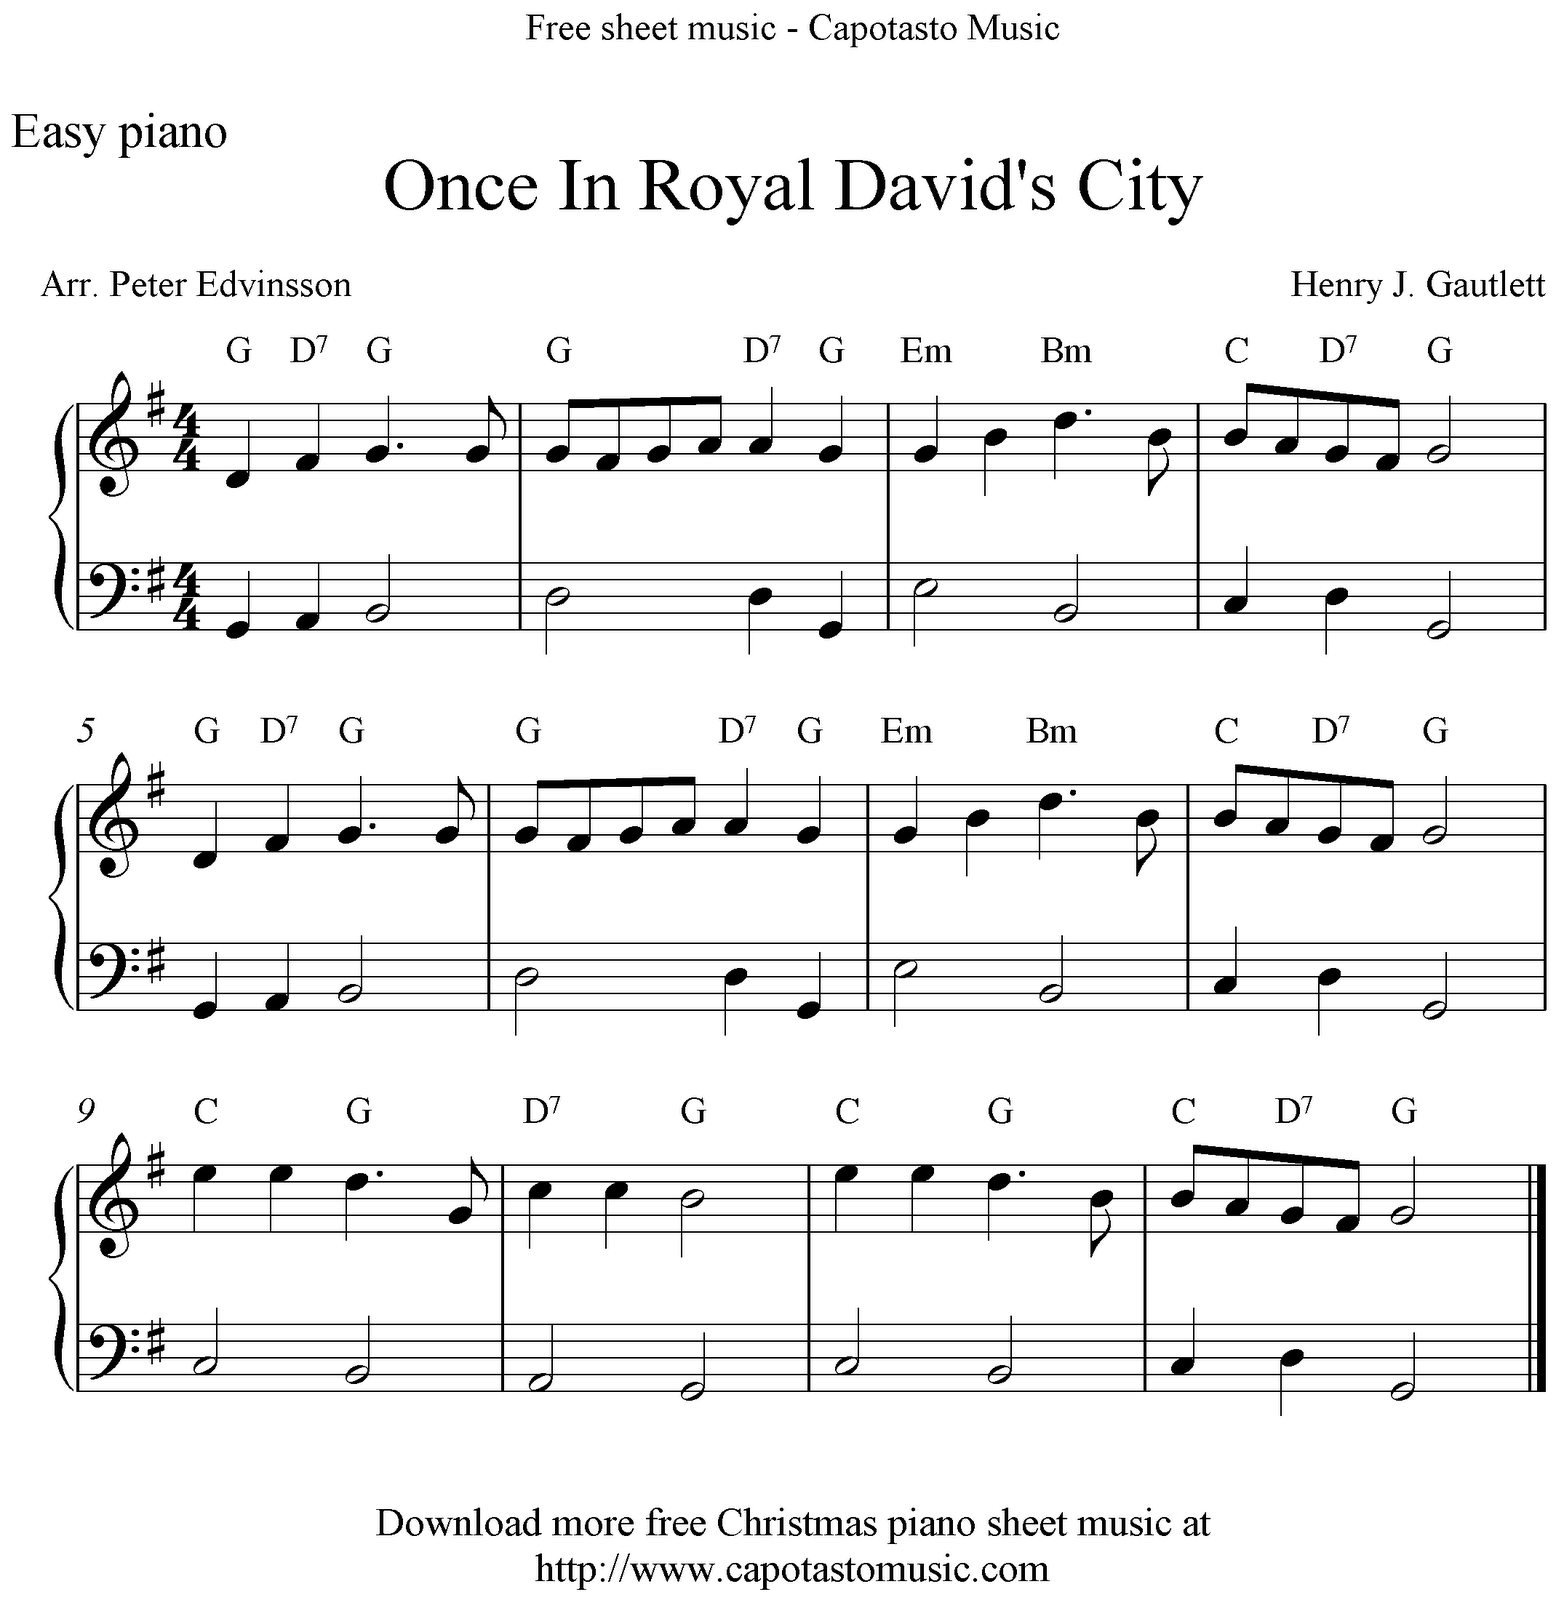 Free Christmas Piano Sheet Music Notes Once In Royal